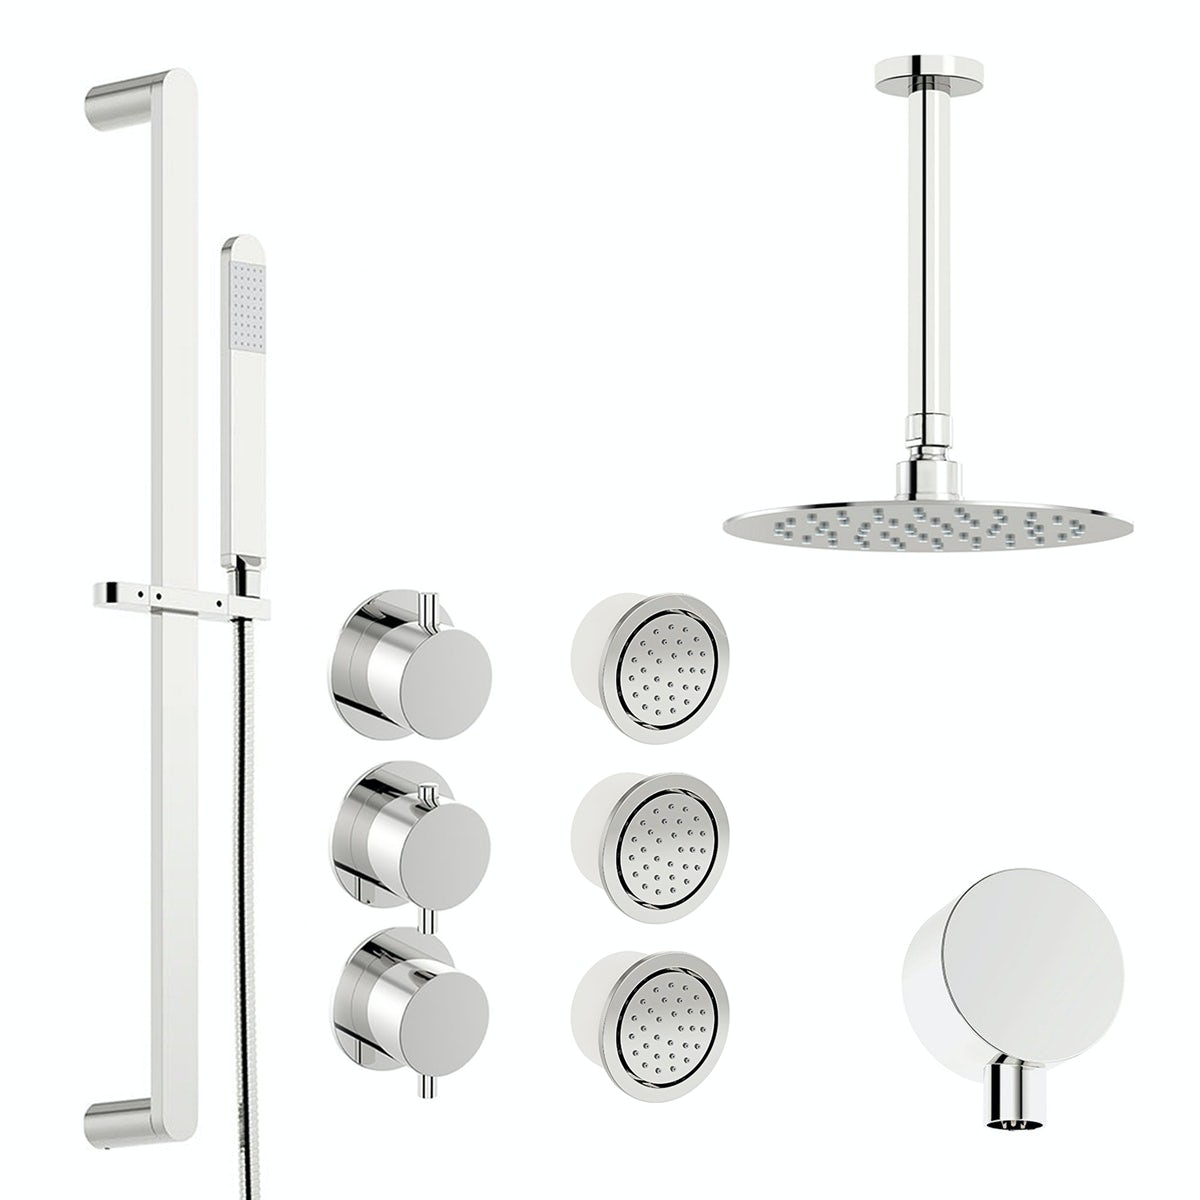 Mode Hardy thermostatic shower valve with complete ceiling shower set